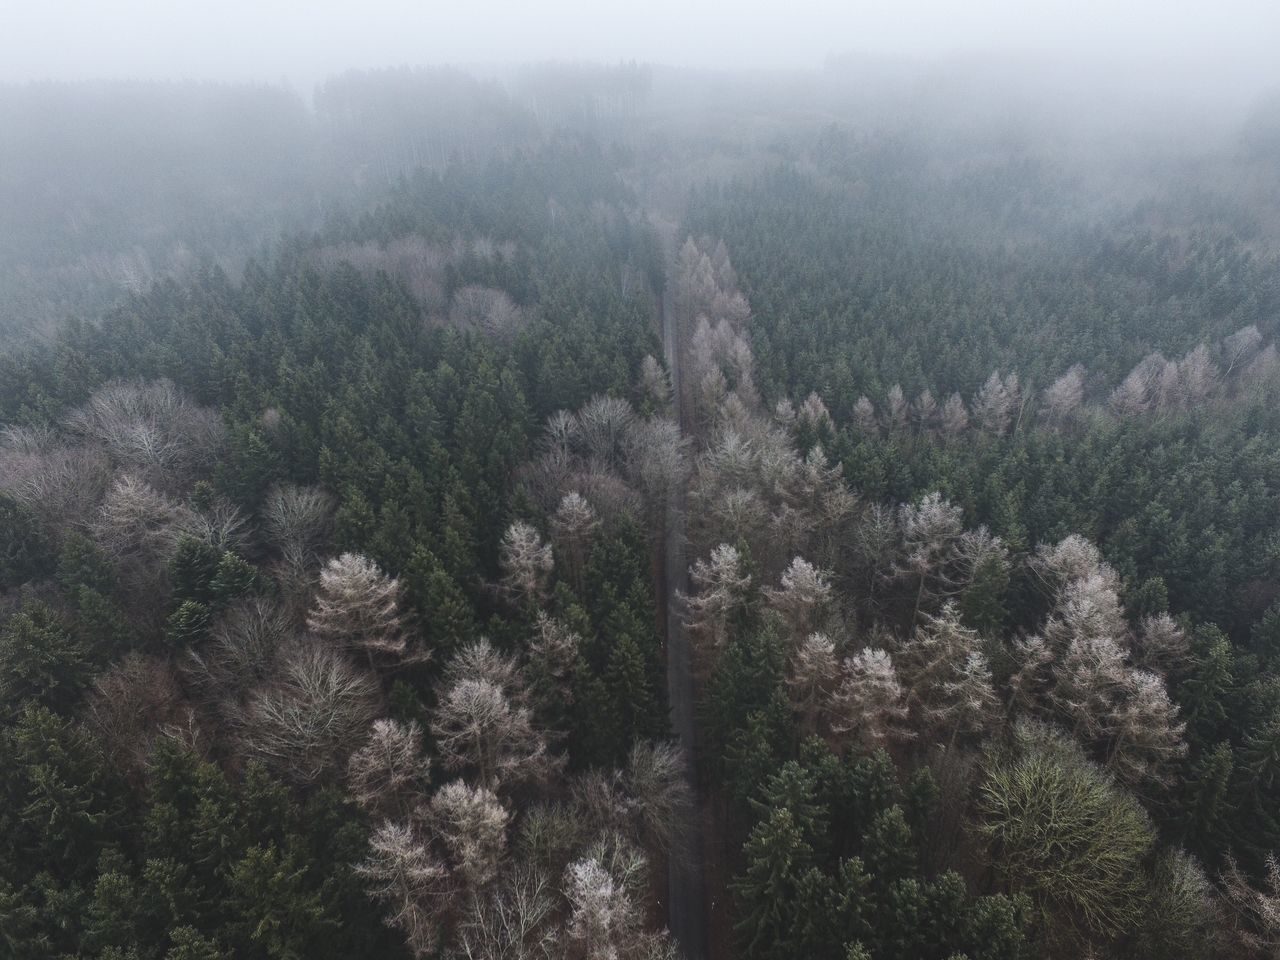 Tree Nature Growth Scenics Outdoors Beauty In Nature Aerial View No People Sky Treetop Day